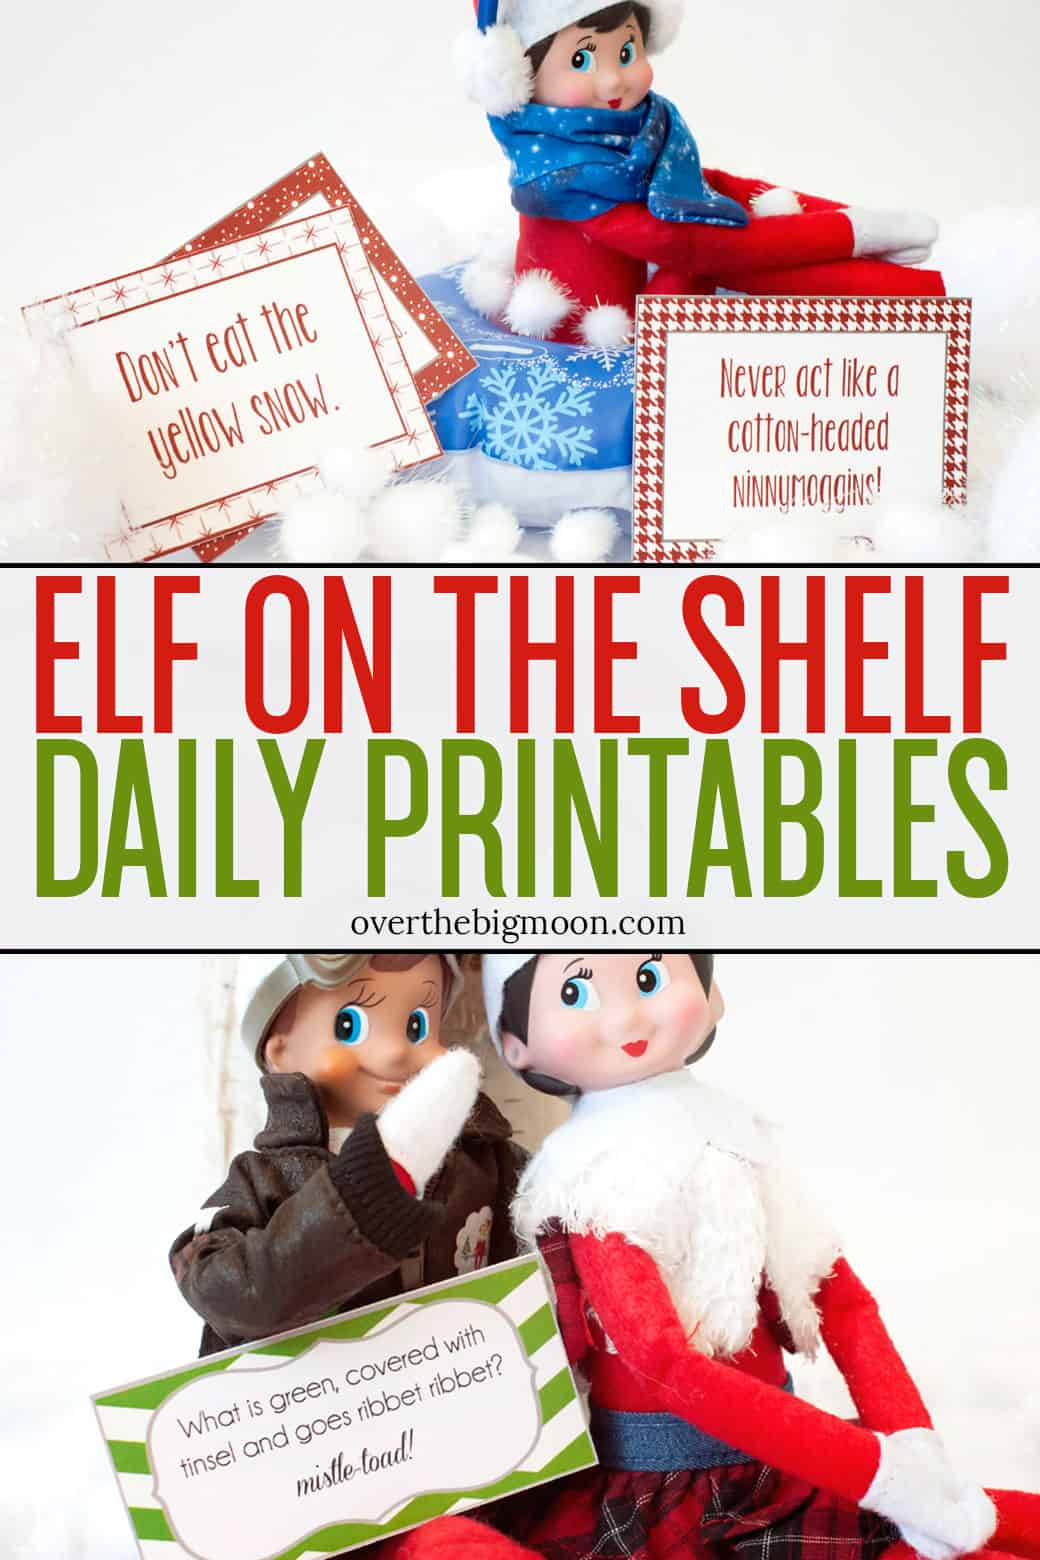 Elf on the Shelf DAILY Printables to make your Elf Season Easier - Elfisms, Joke Cards, Good Deed Cards, Hide and Go Seek Cards and more! All offered as a free download at overthebigmoon.com!